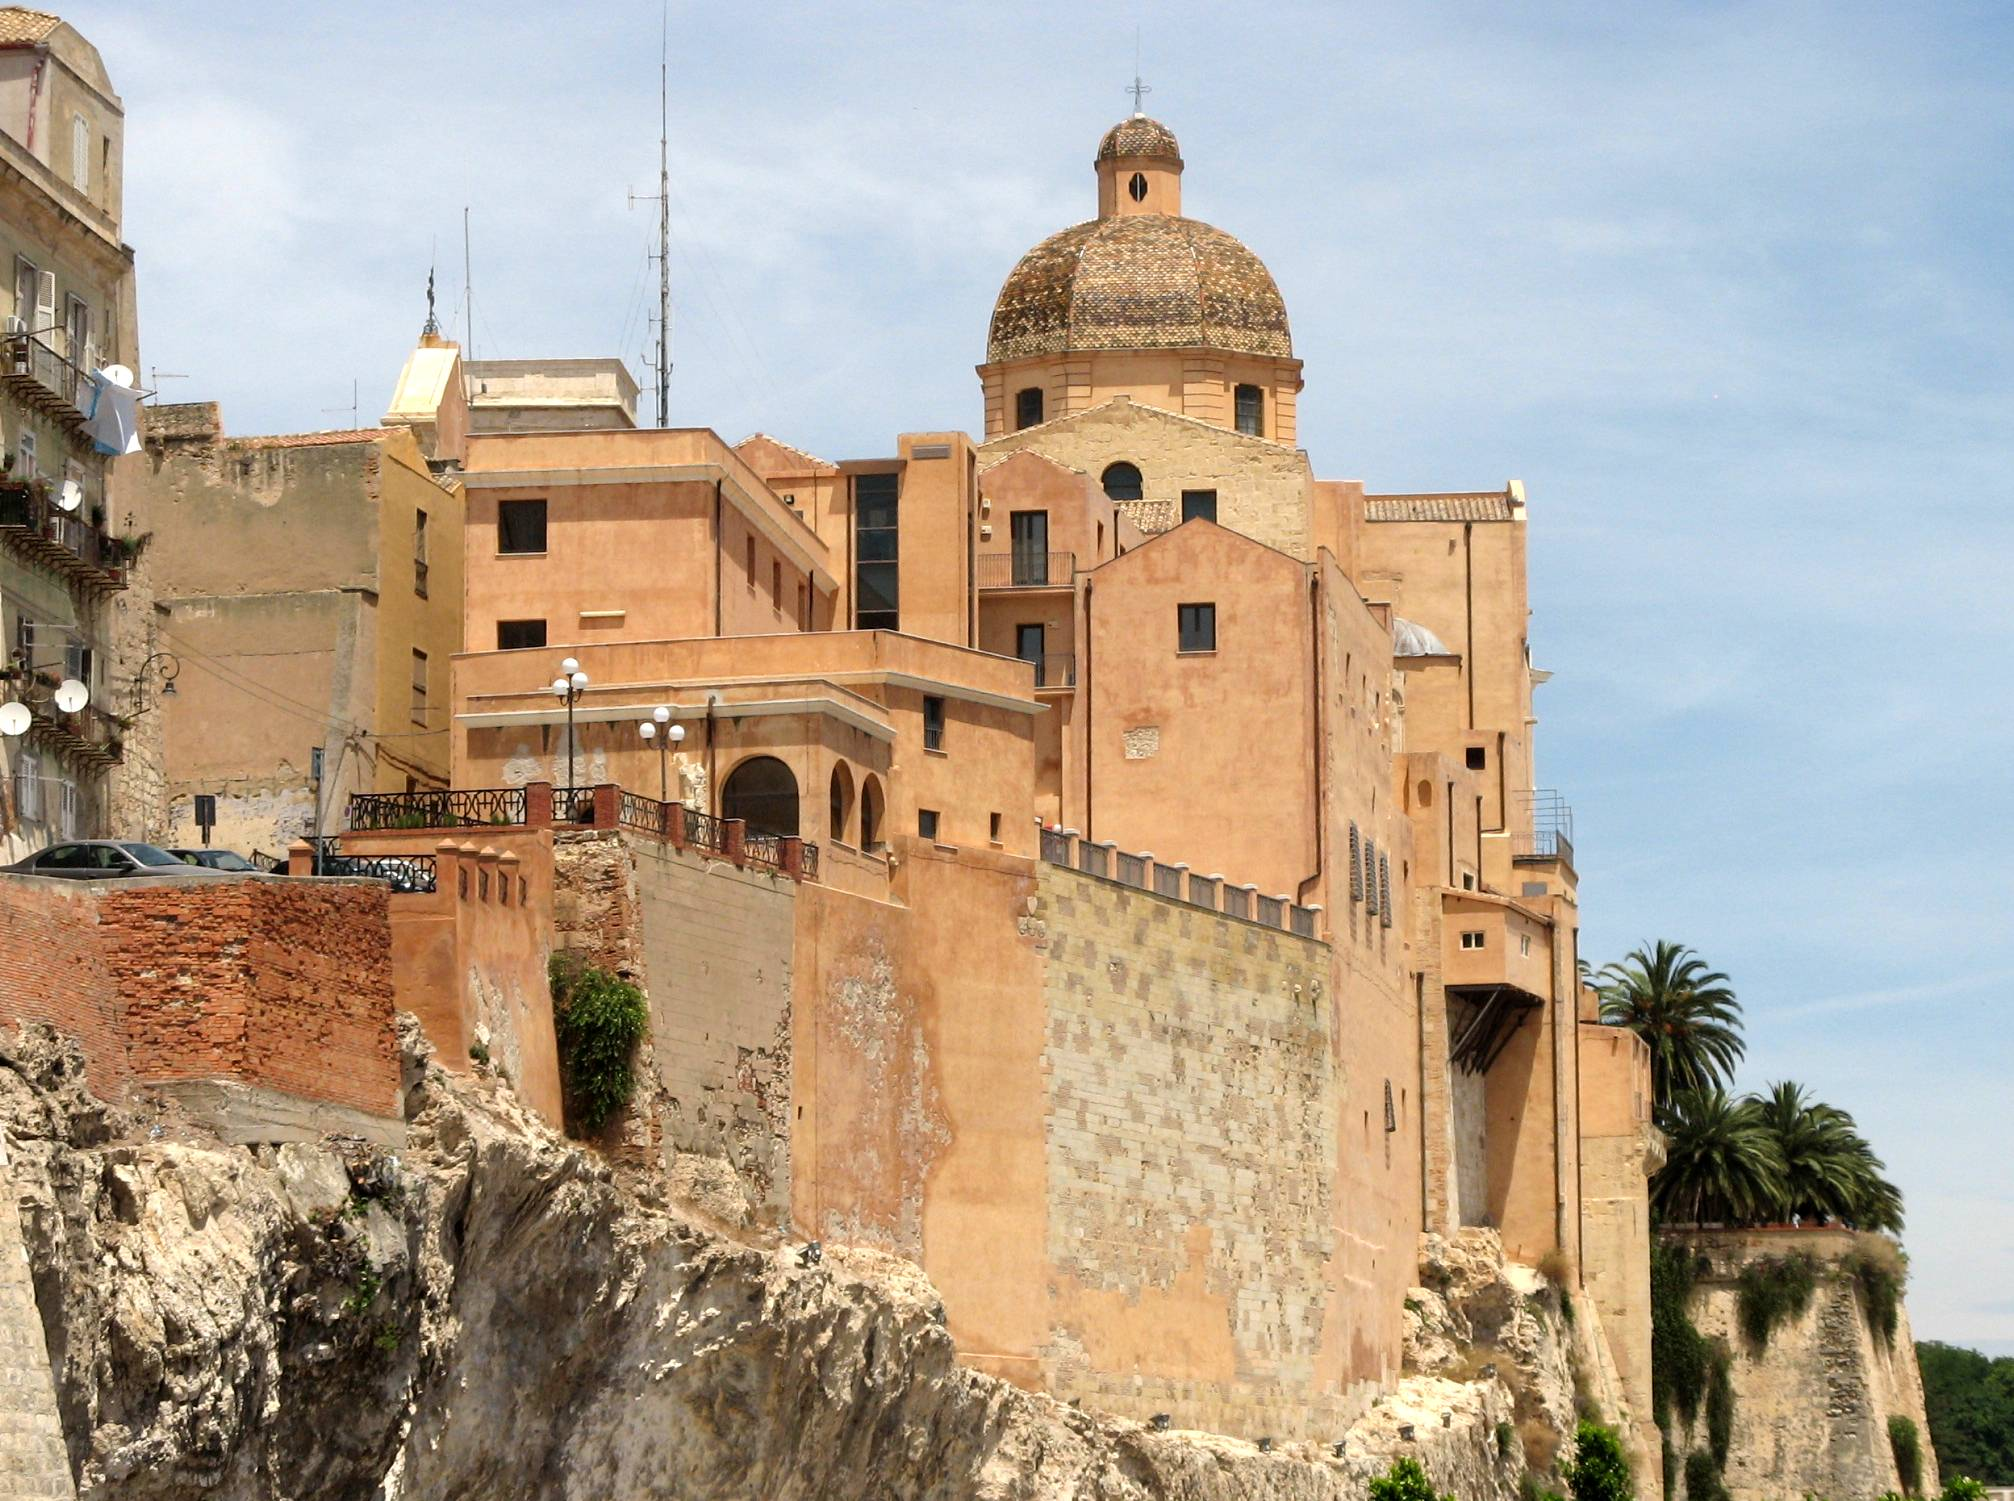 Cagliari cathedral, in the Castello Castle District